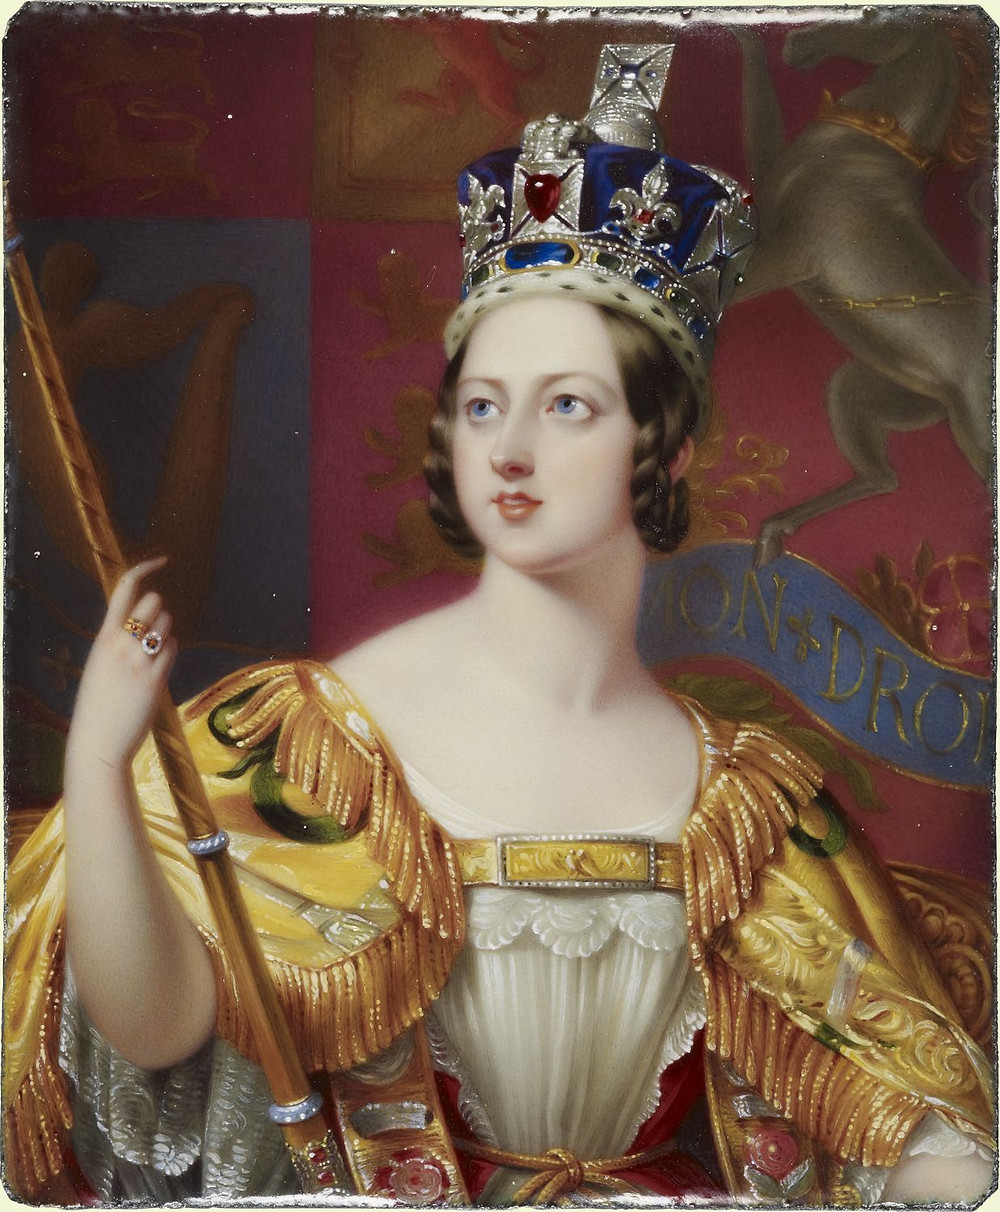 Queen Victoria (1819-1901) 1843 by Henry Pierce Bone